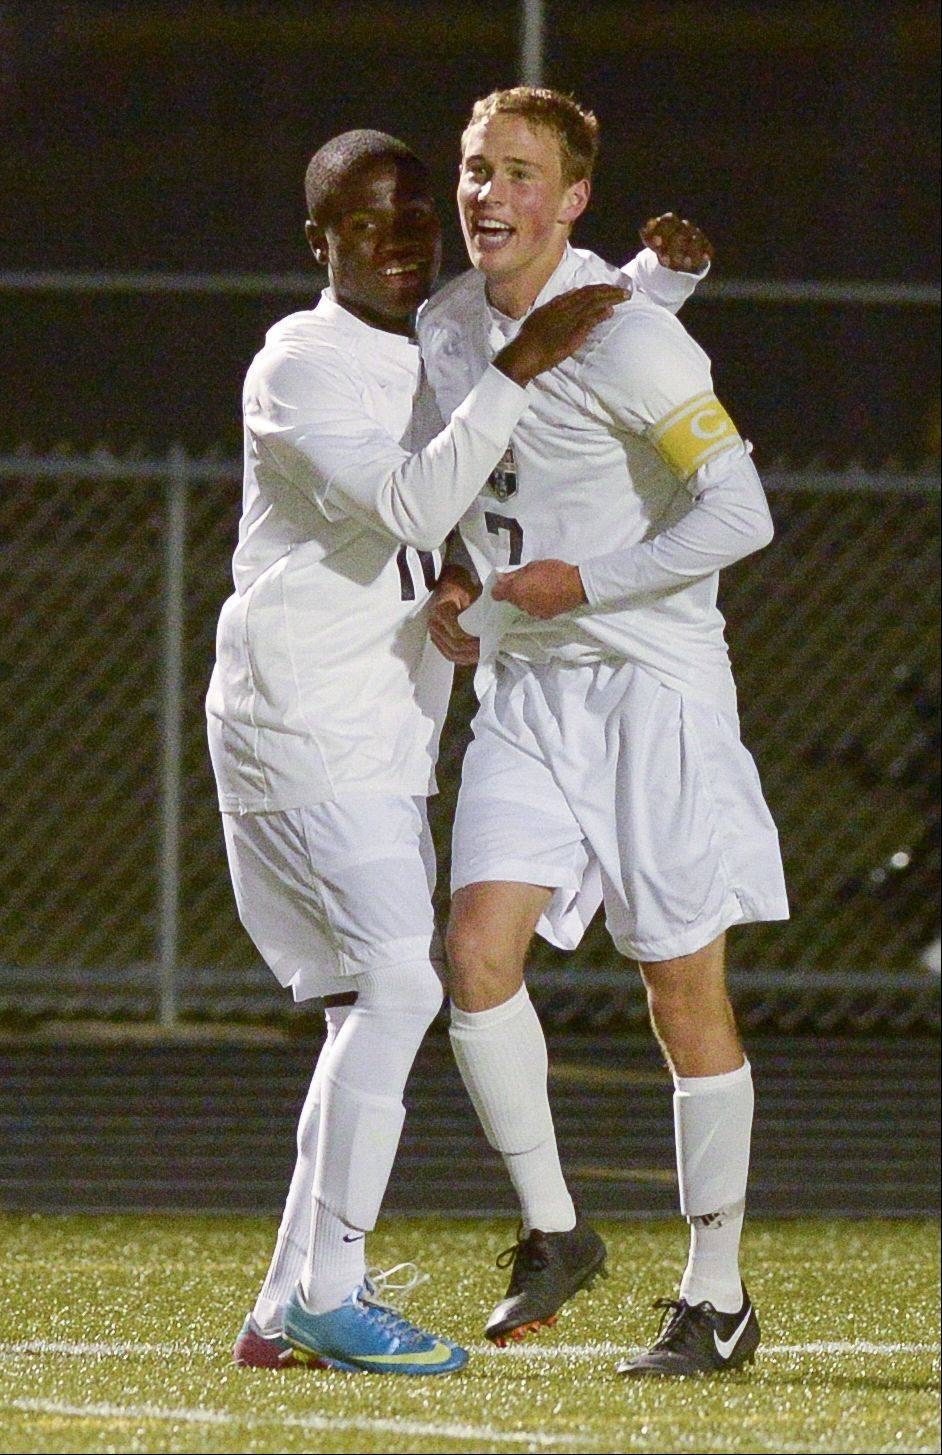 Metea Valley's Chris Freeman, left, gives his teammate Dakota Rowsey a hug after he scored a goal in the first half of play against St. Charles East during boys soccer at home Wednesday.